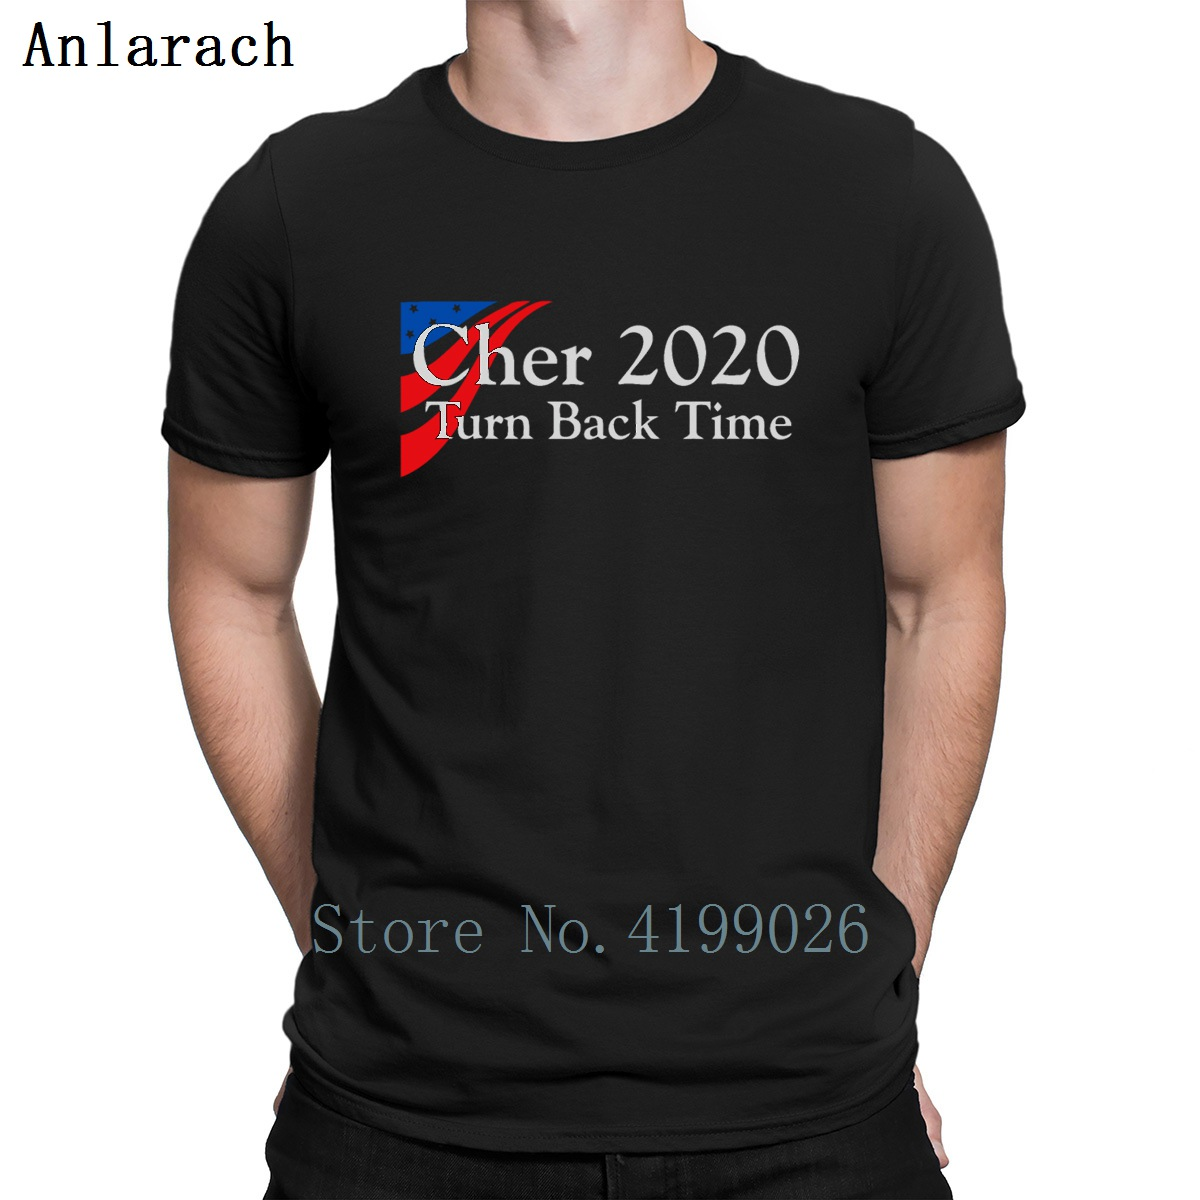 Cher 2020 Turn Back Time T Shirt Cheap Cotton Simple Sunlight Printed Custom Tshirt Hiphop Outfit New Style Great Urban